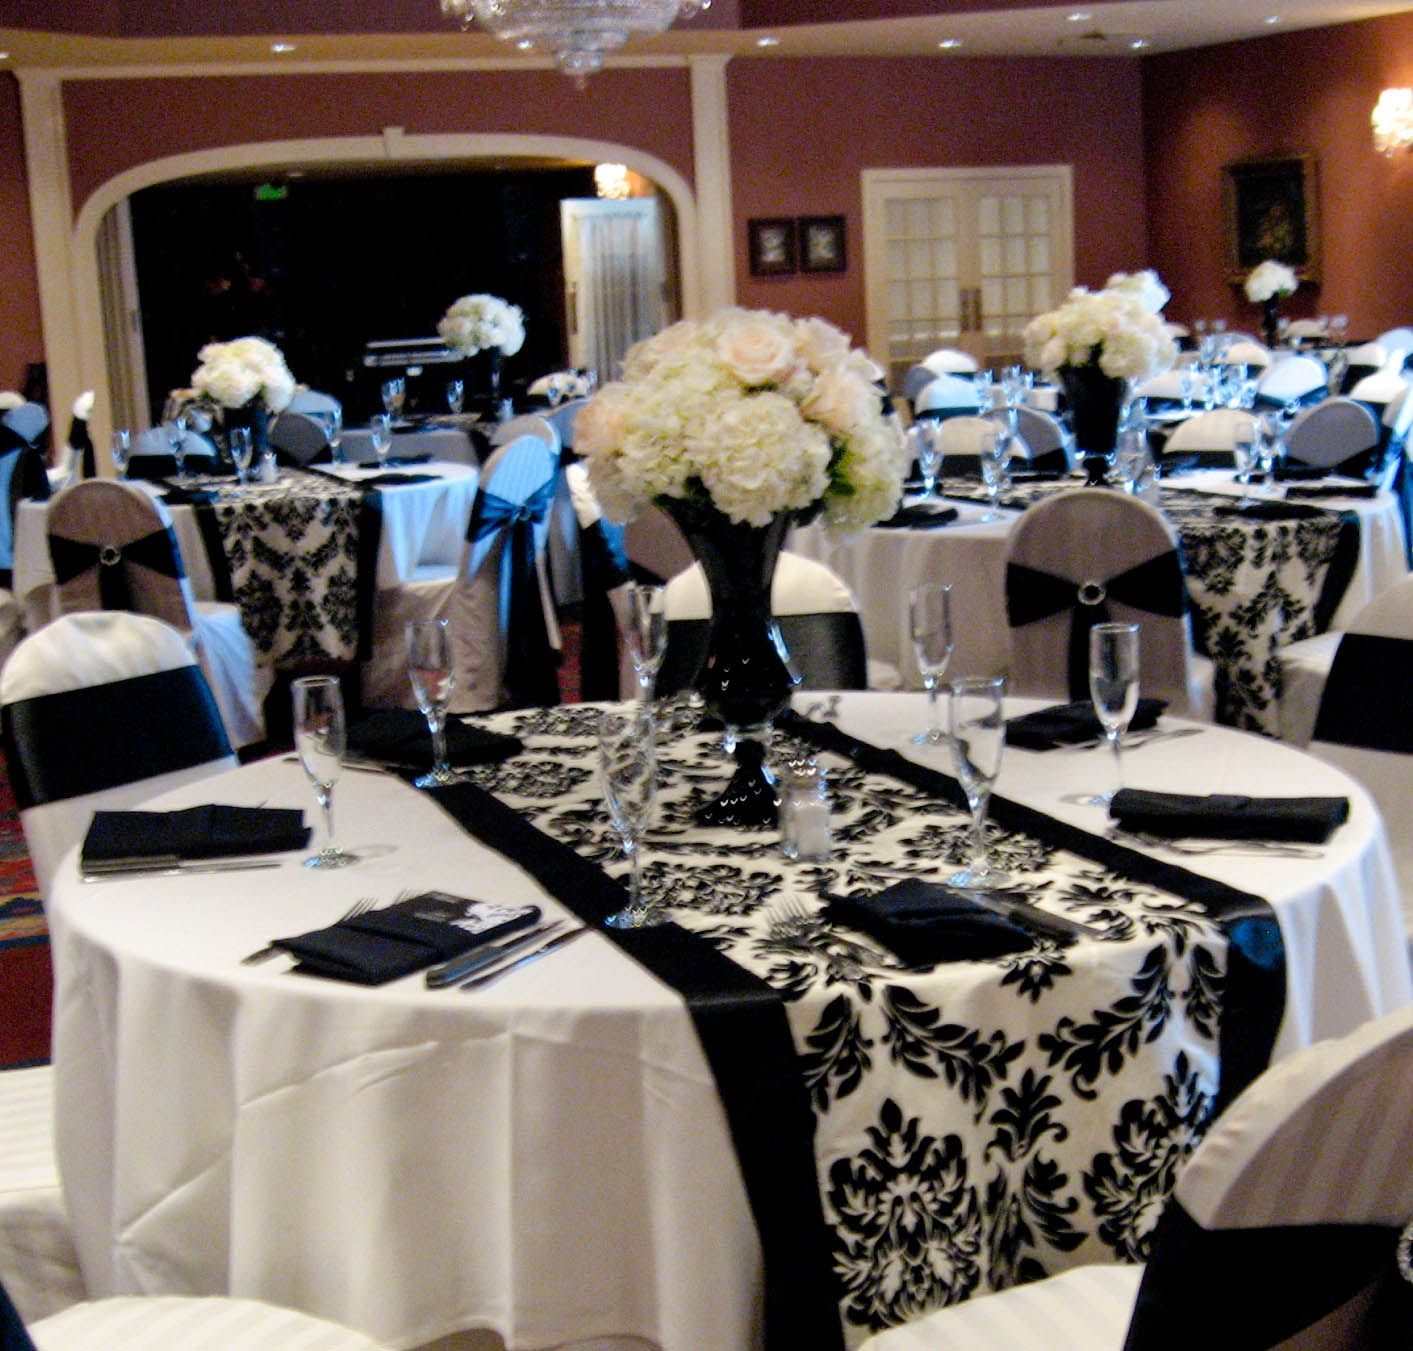 Wedding White Theme: Dramatic Black And White Wedding Reception. I Like The